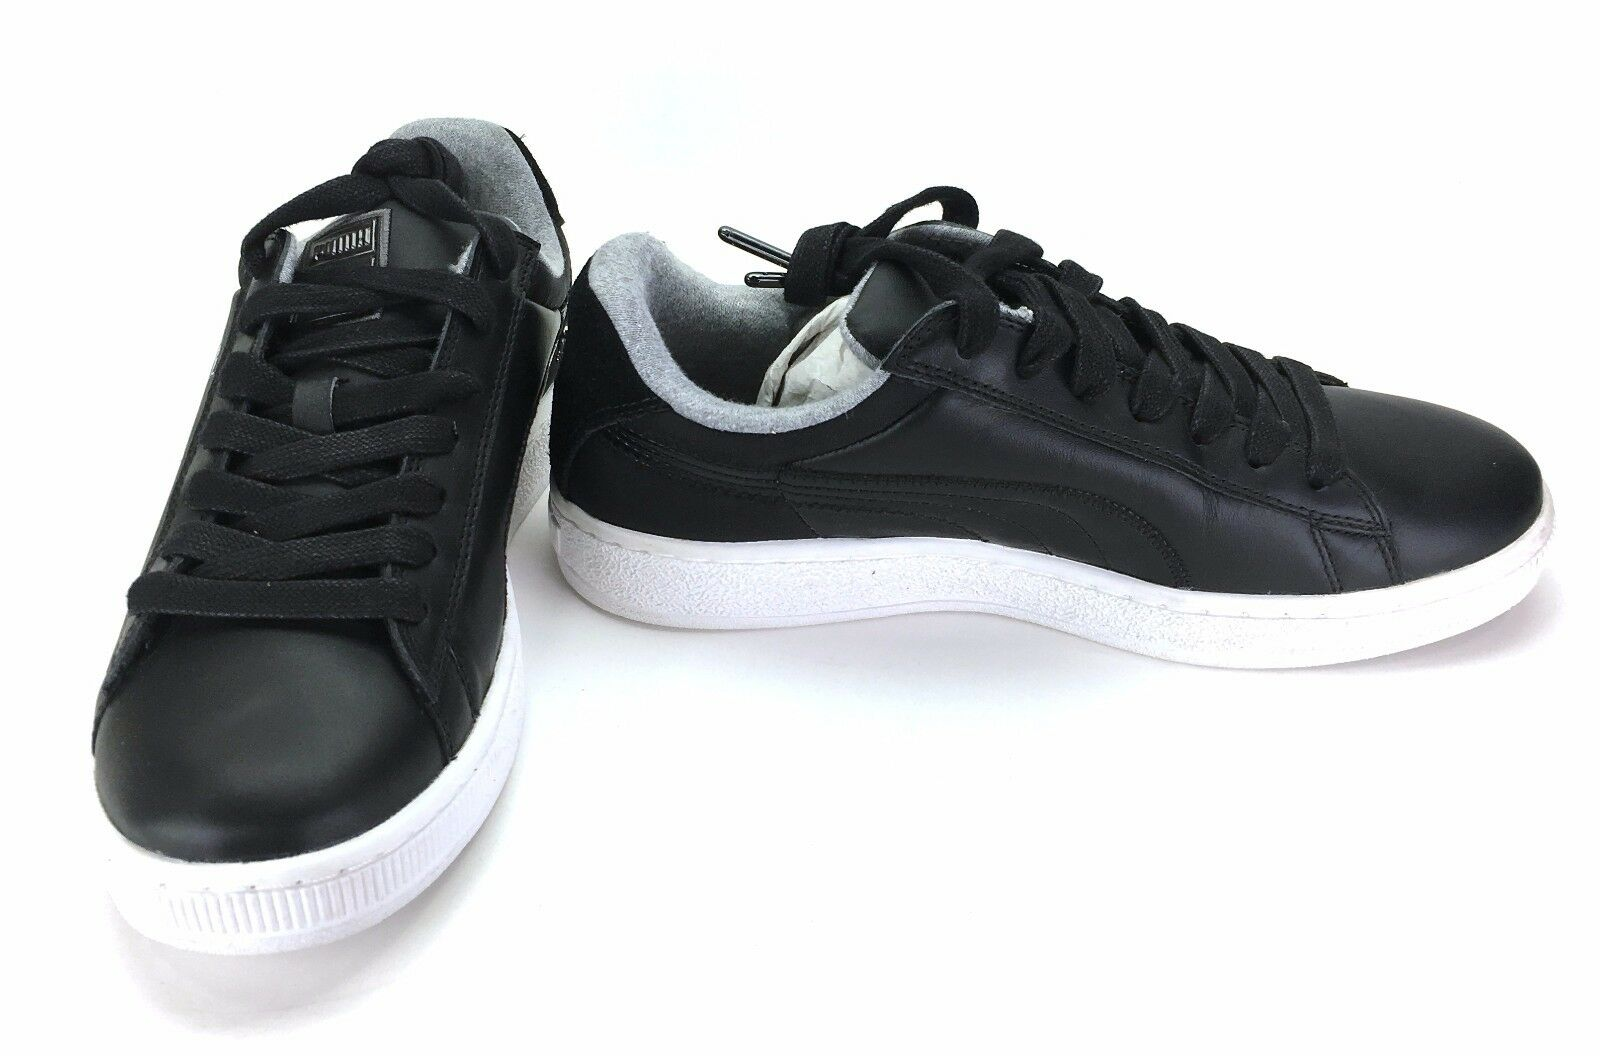 Puma Chaussures Basket RLS Retro Leather Noir/Blanc/ Gris  Sneakers